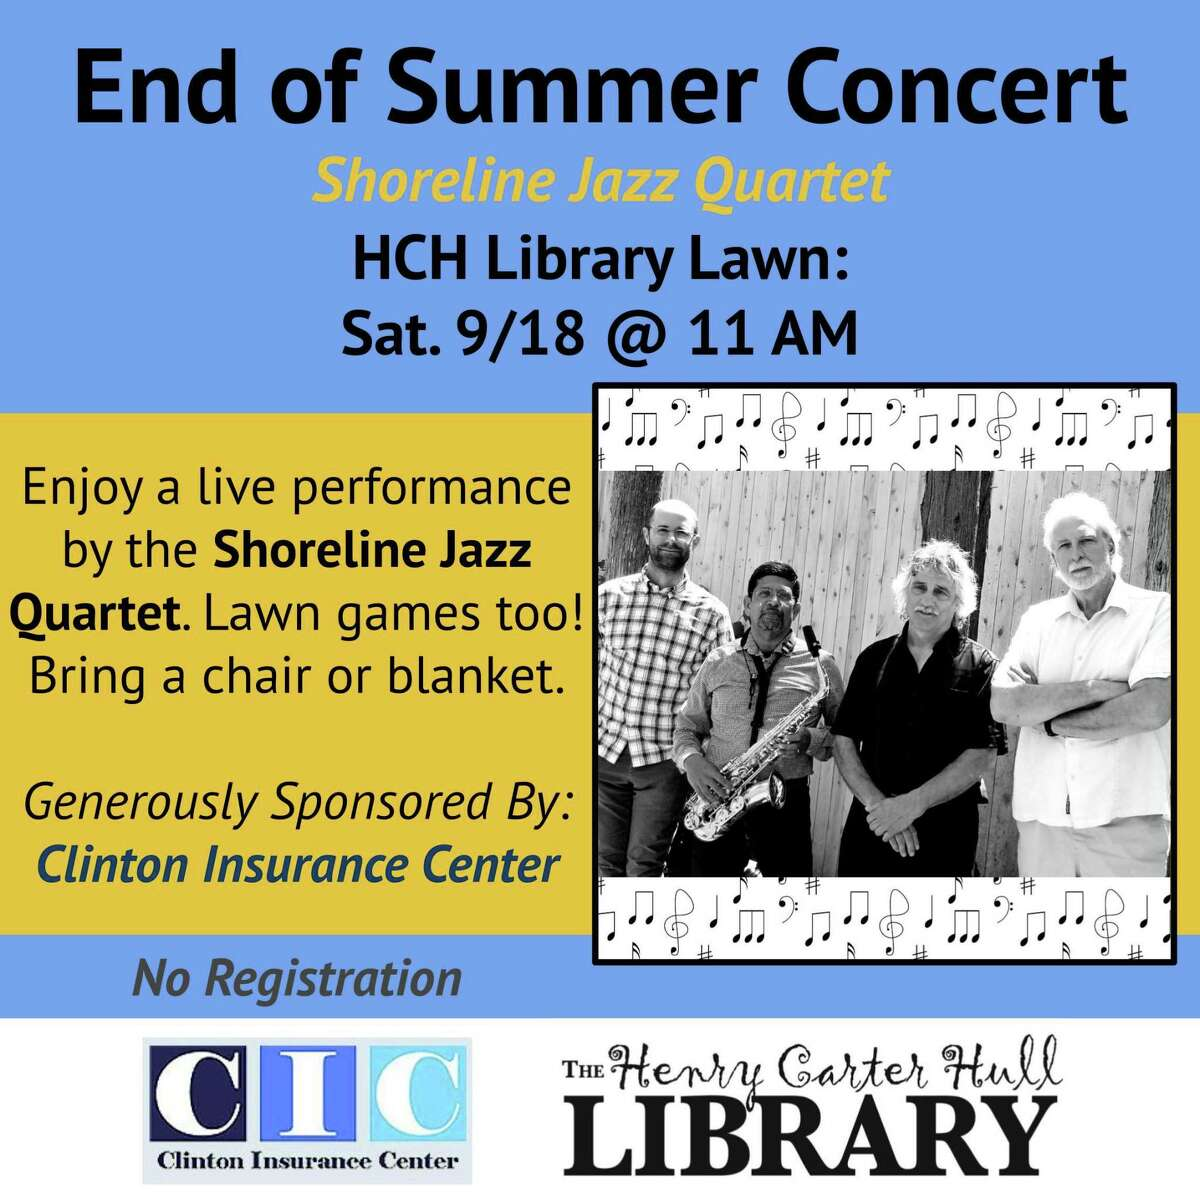 The Shoreline Jazz Quartet will be performing Sept. 18 at the Henry Carter Hull Library in Clinton.